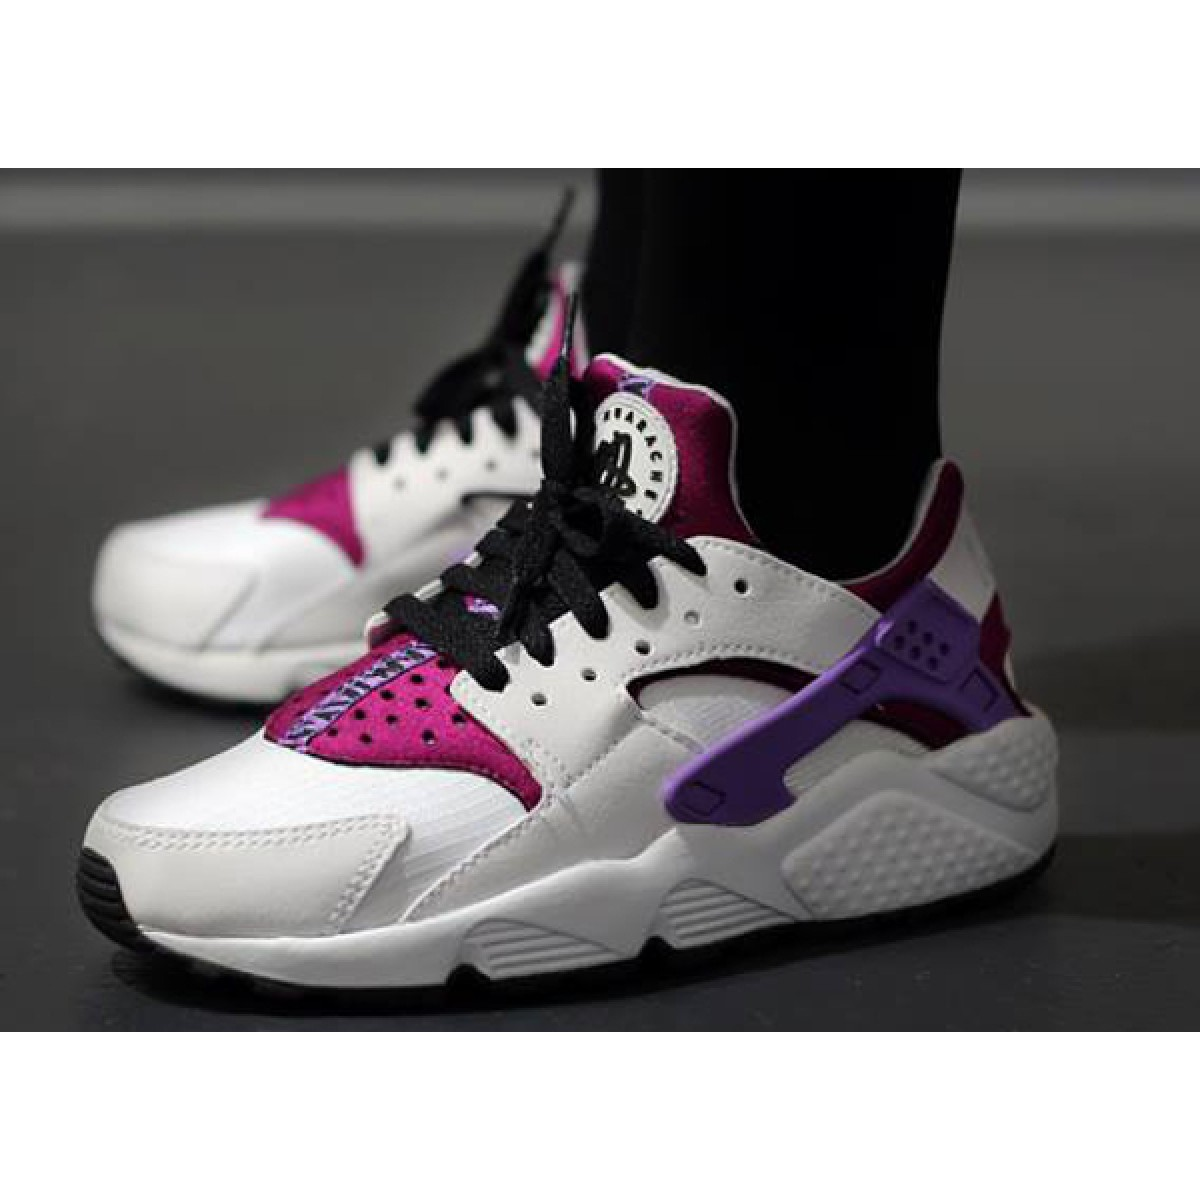 100% authentic wholesale sale Achat / Vente produits Nike Air Huarache Femme,Nike Air Huarache ...